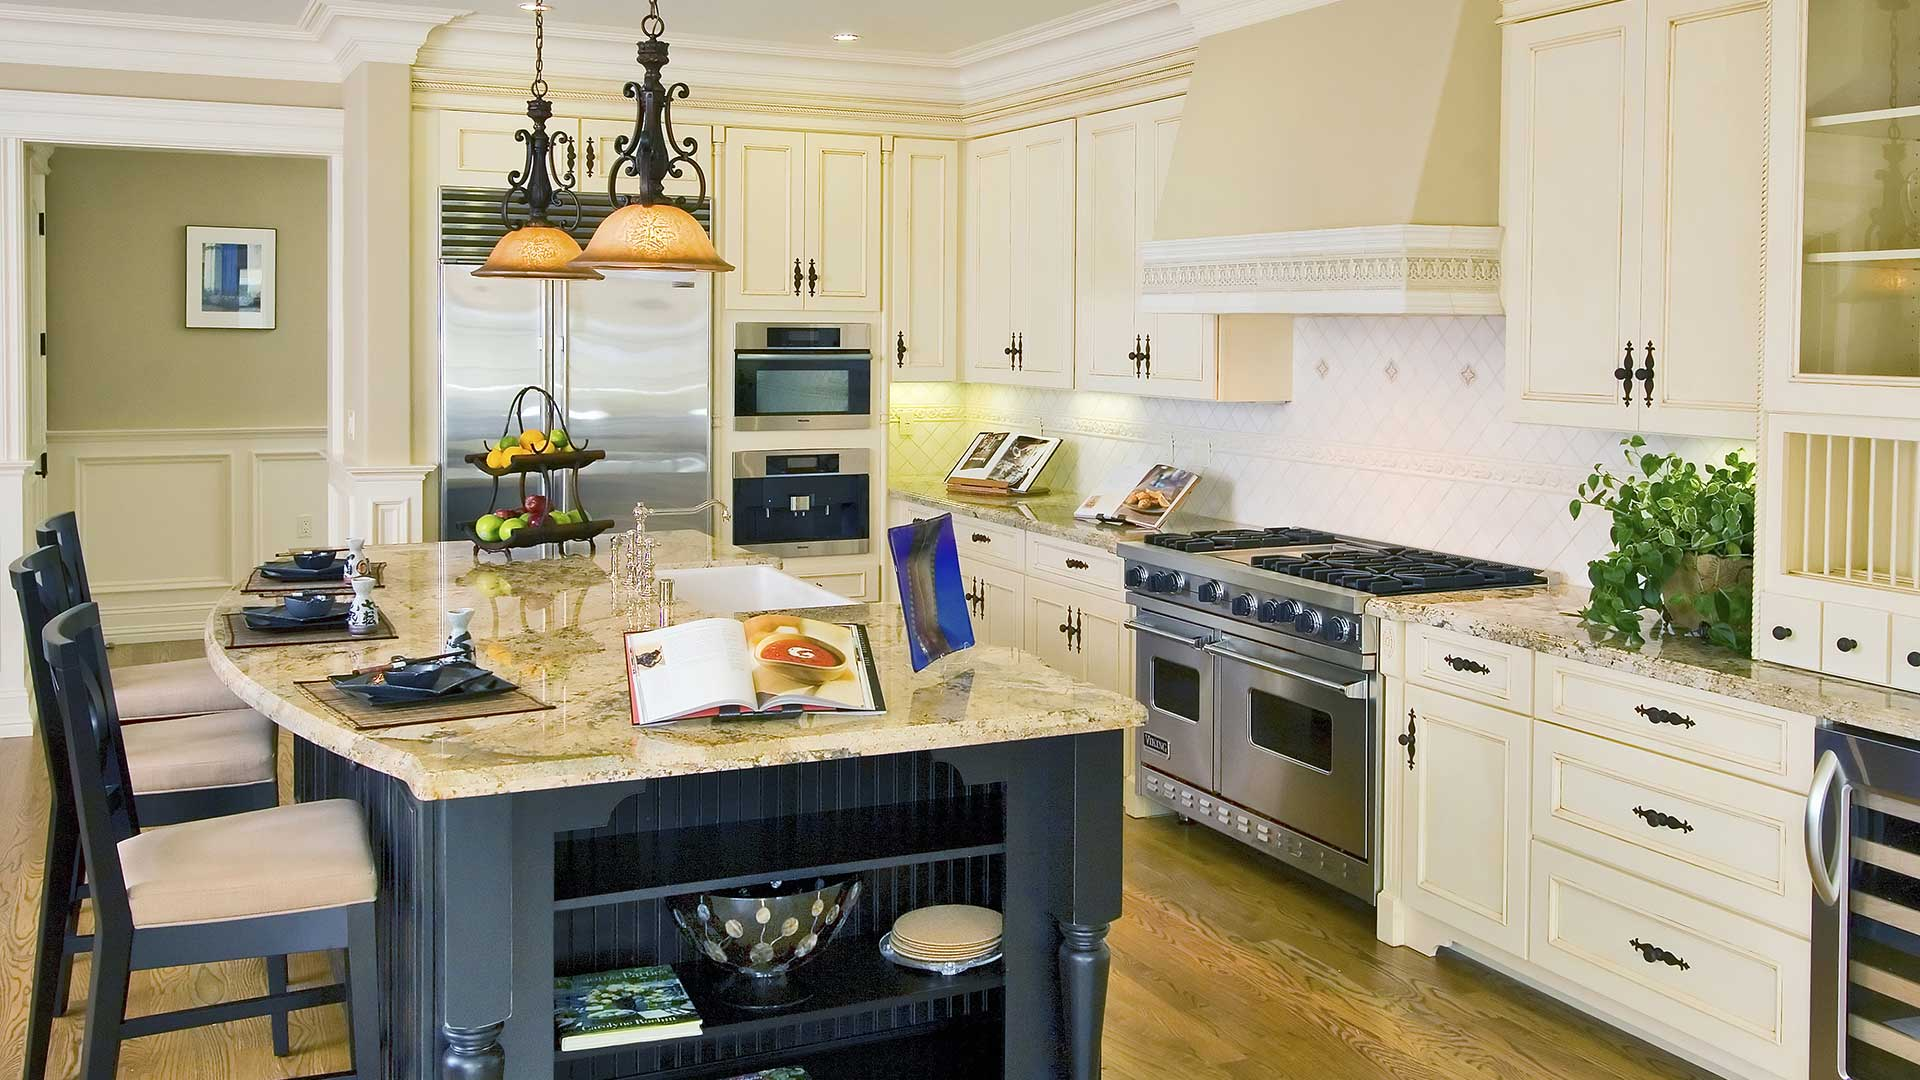 What does it Cost for a Bay Area Kitchen Remodel Gordon Reese